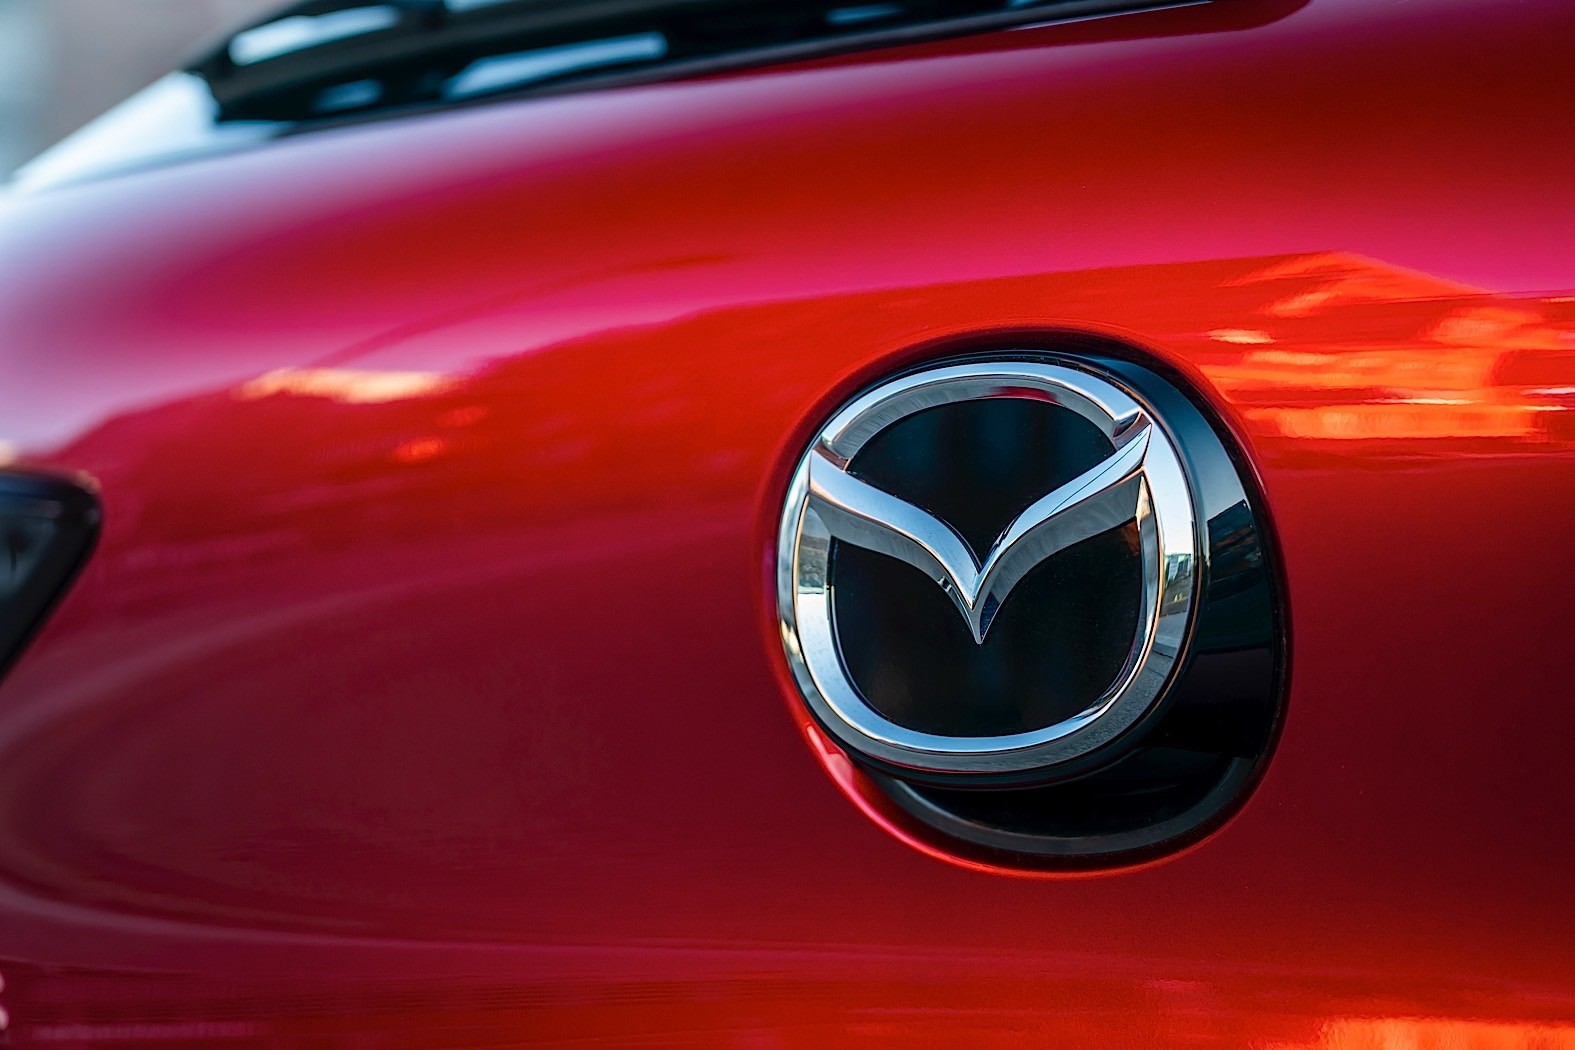 2021 mazda3 turbo reportedly coming with skyactiv-g 2.5t